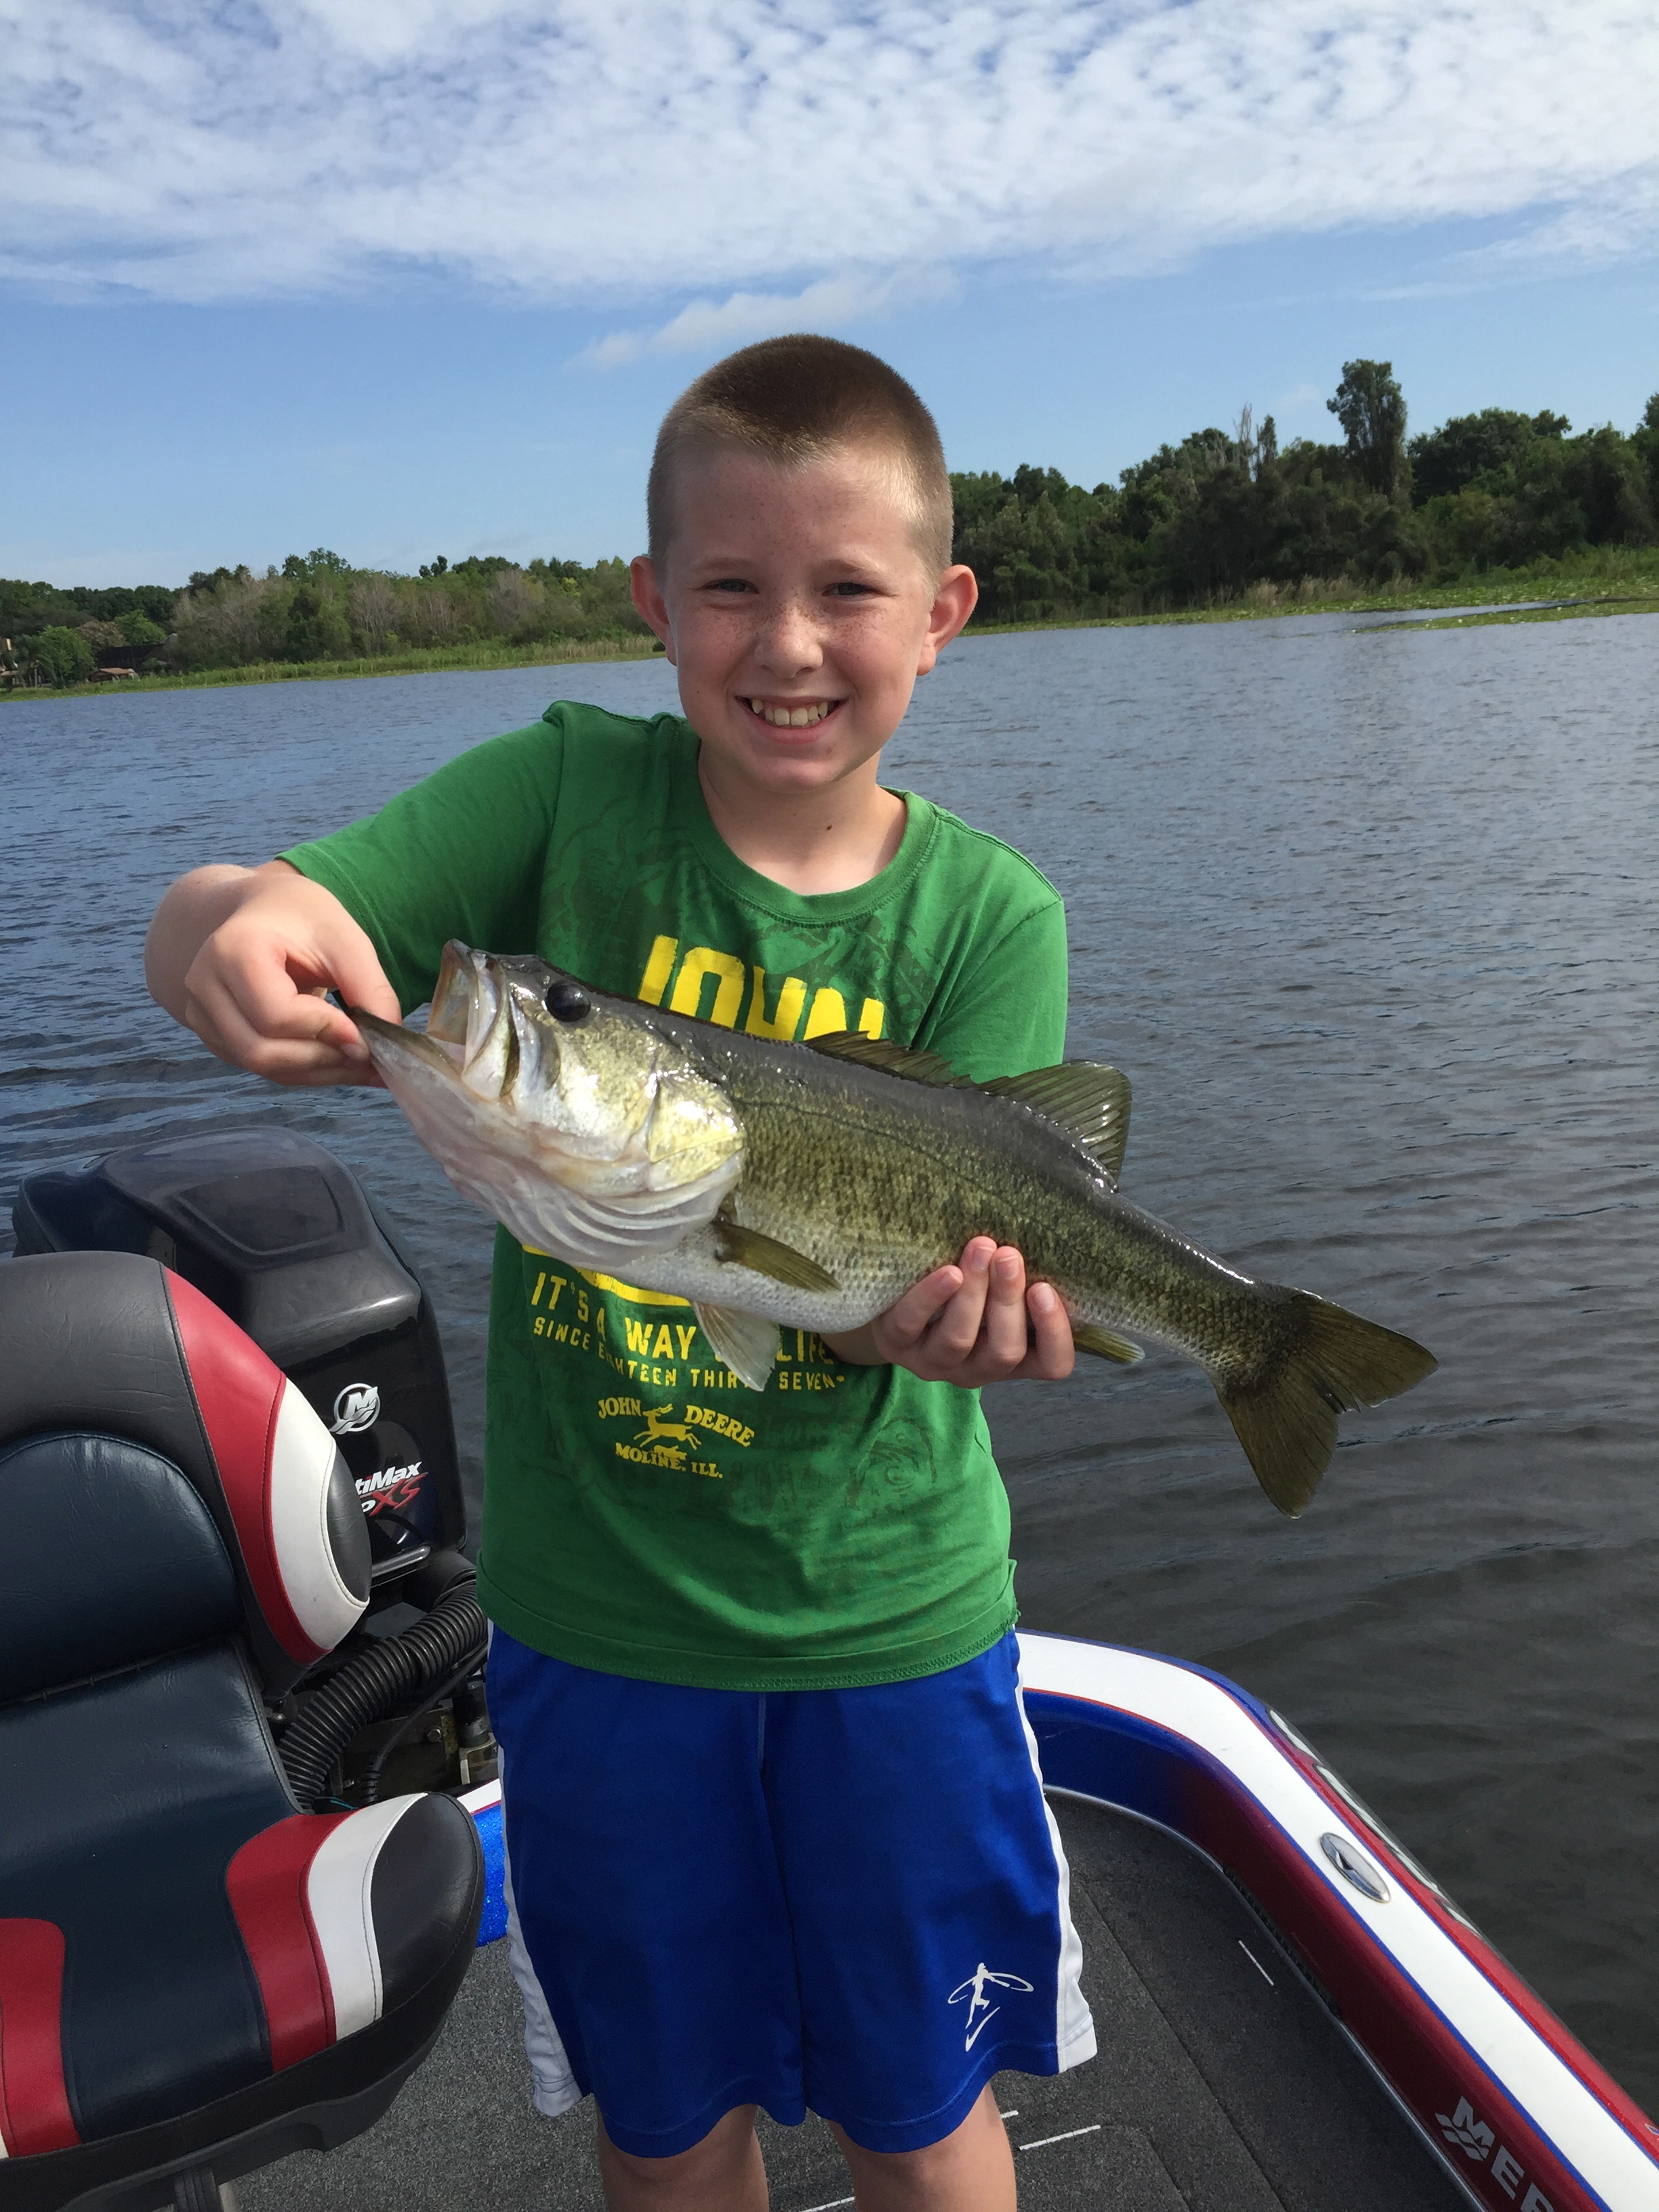 TMC Guide Services :: Family friendly bass fishing Winter